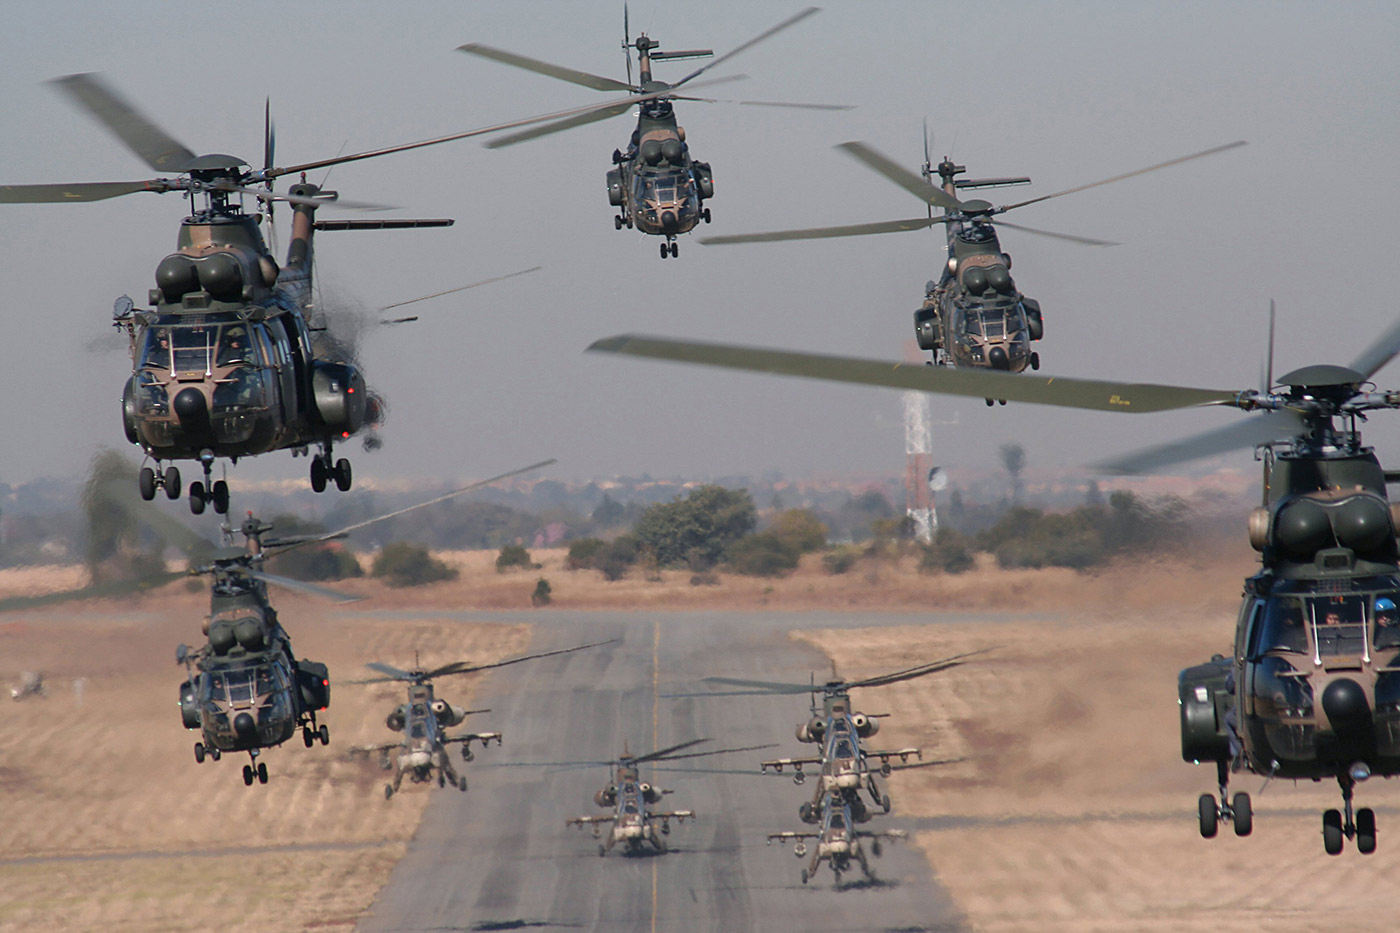 Acme OEM Aerospace & Defense | Aerial view of nine helicopters takilng off